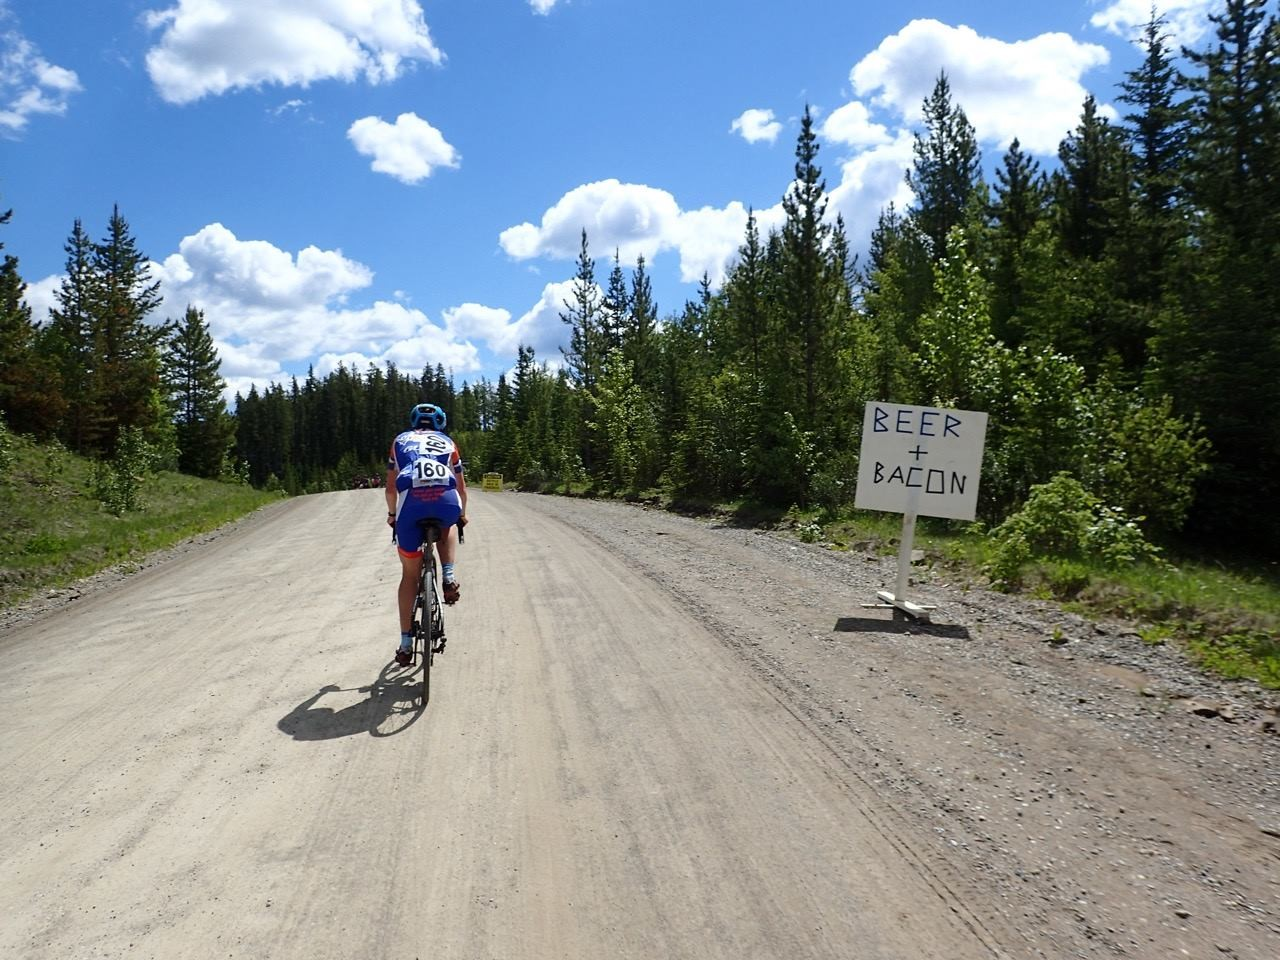 In true gravel fashion, one of the feed zones had beer and bacon. 2018 Ghost of the Gravel. photo: The Ghost of the Gravel has some beautiful vistas along its route. 2018 Ghost of the Gravel. photo: Kunio Tsuyuhara